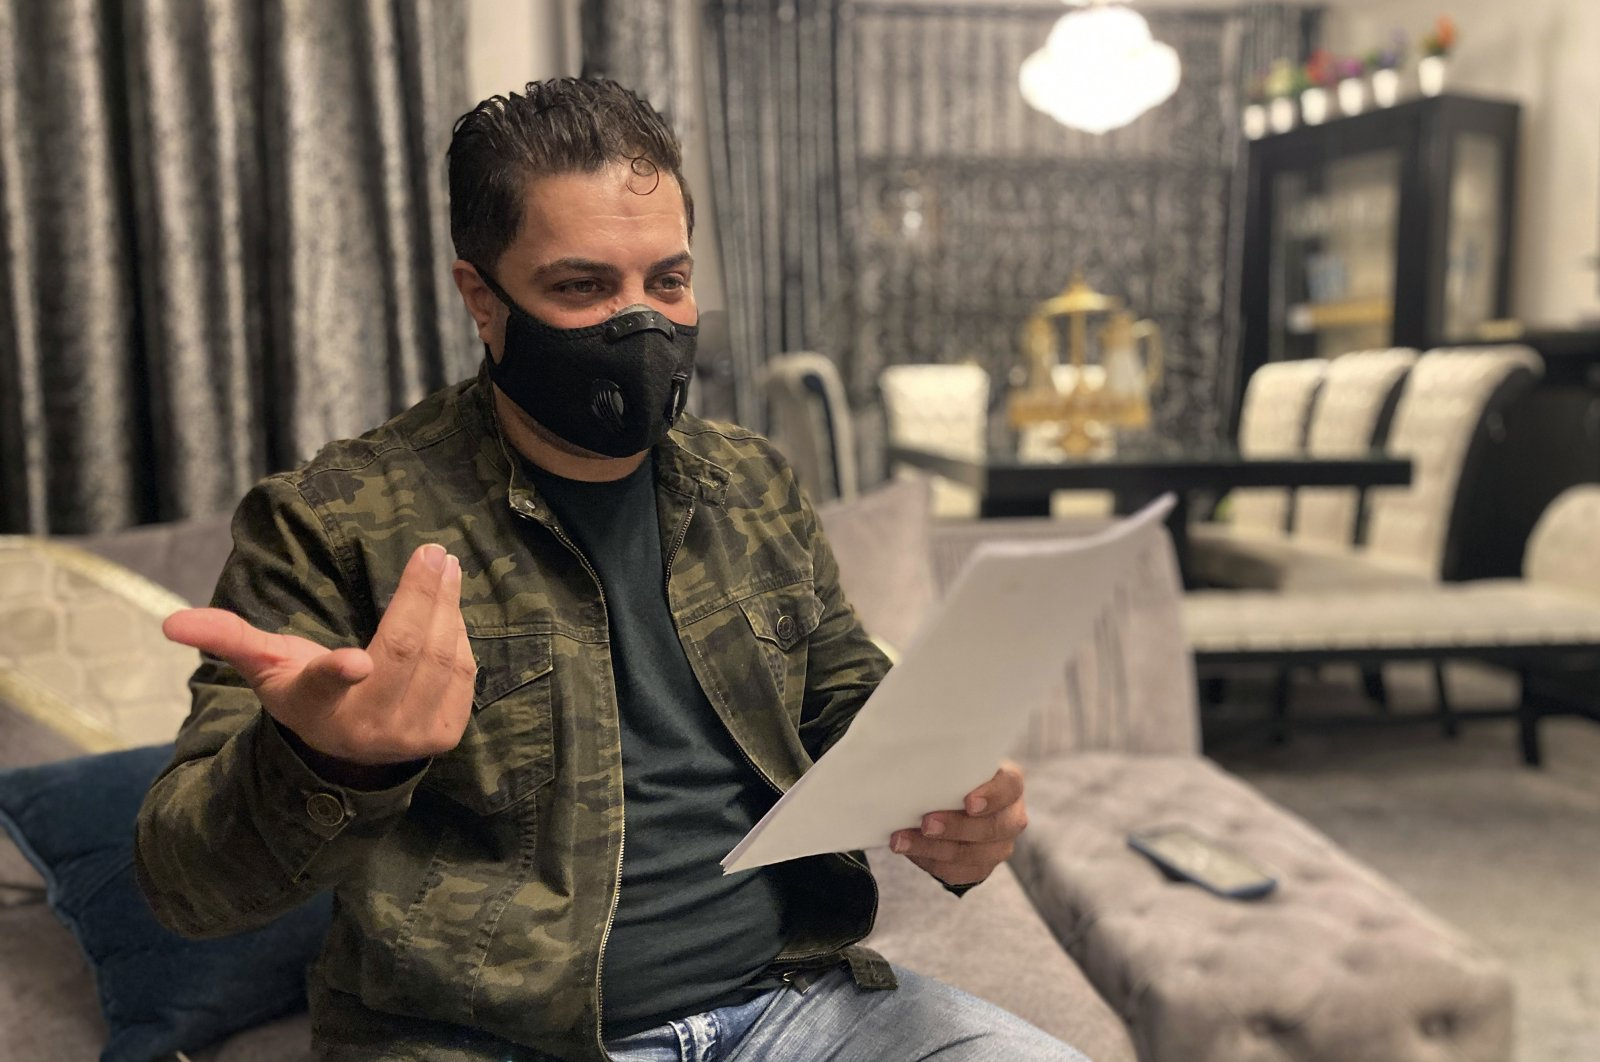 Samer Qraih, a Jordanian car dealer, sits in his apartment holding old business licenses, bank statements and documents, in Amman, Jordan, March 14, 2021. (AP Photo)